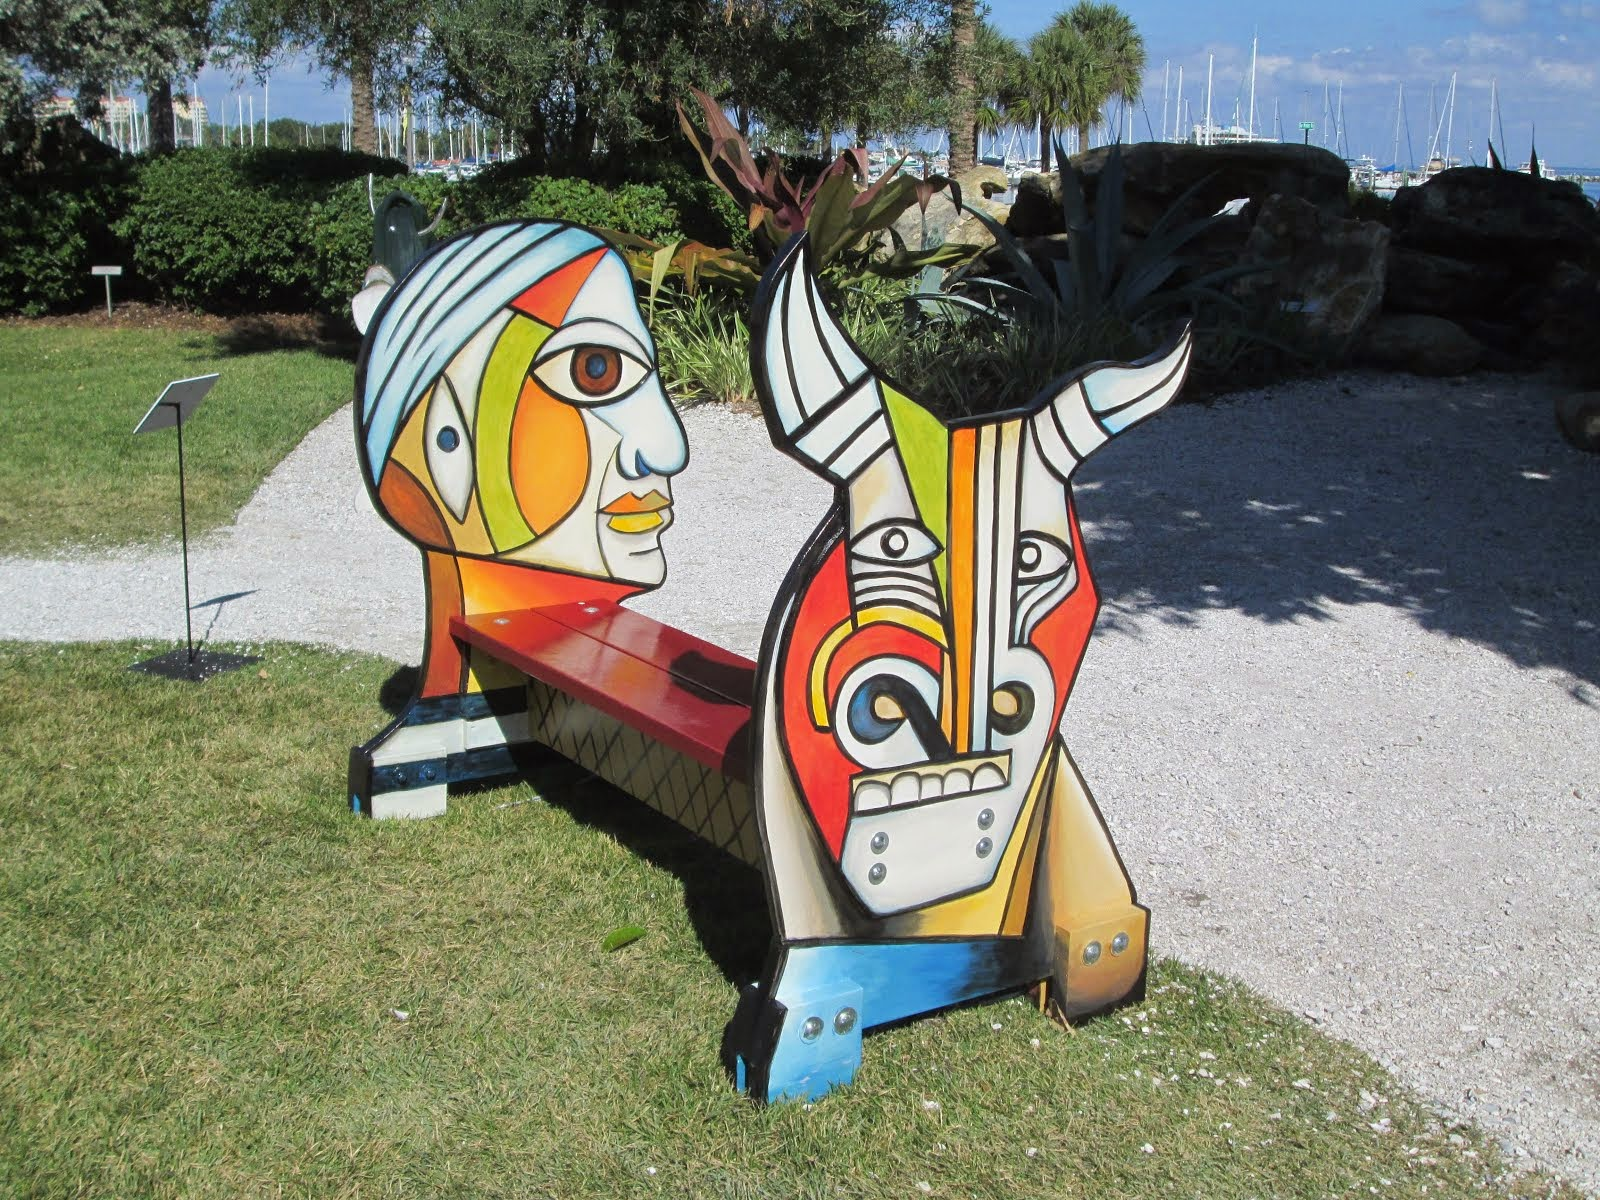 Picasso Bench at Dali